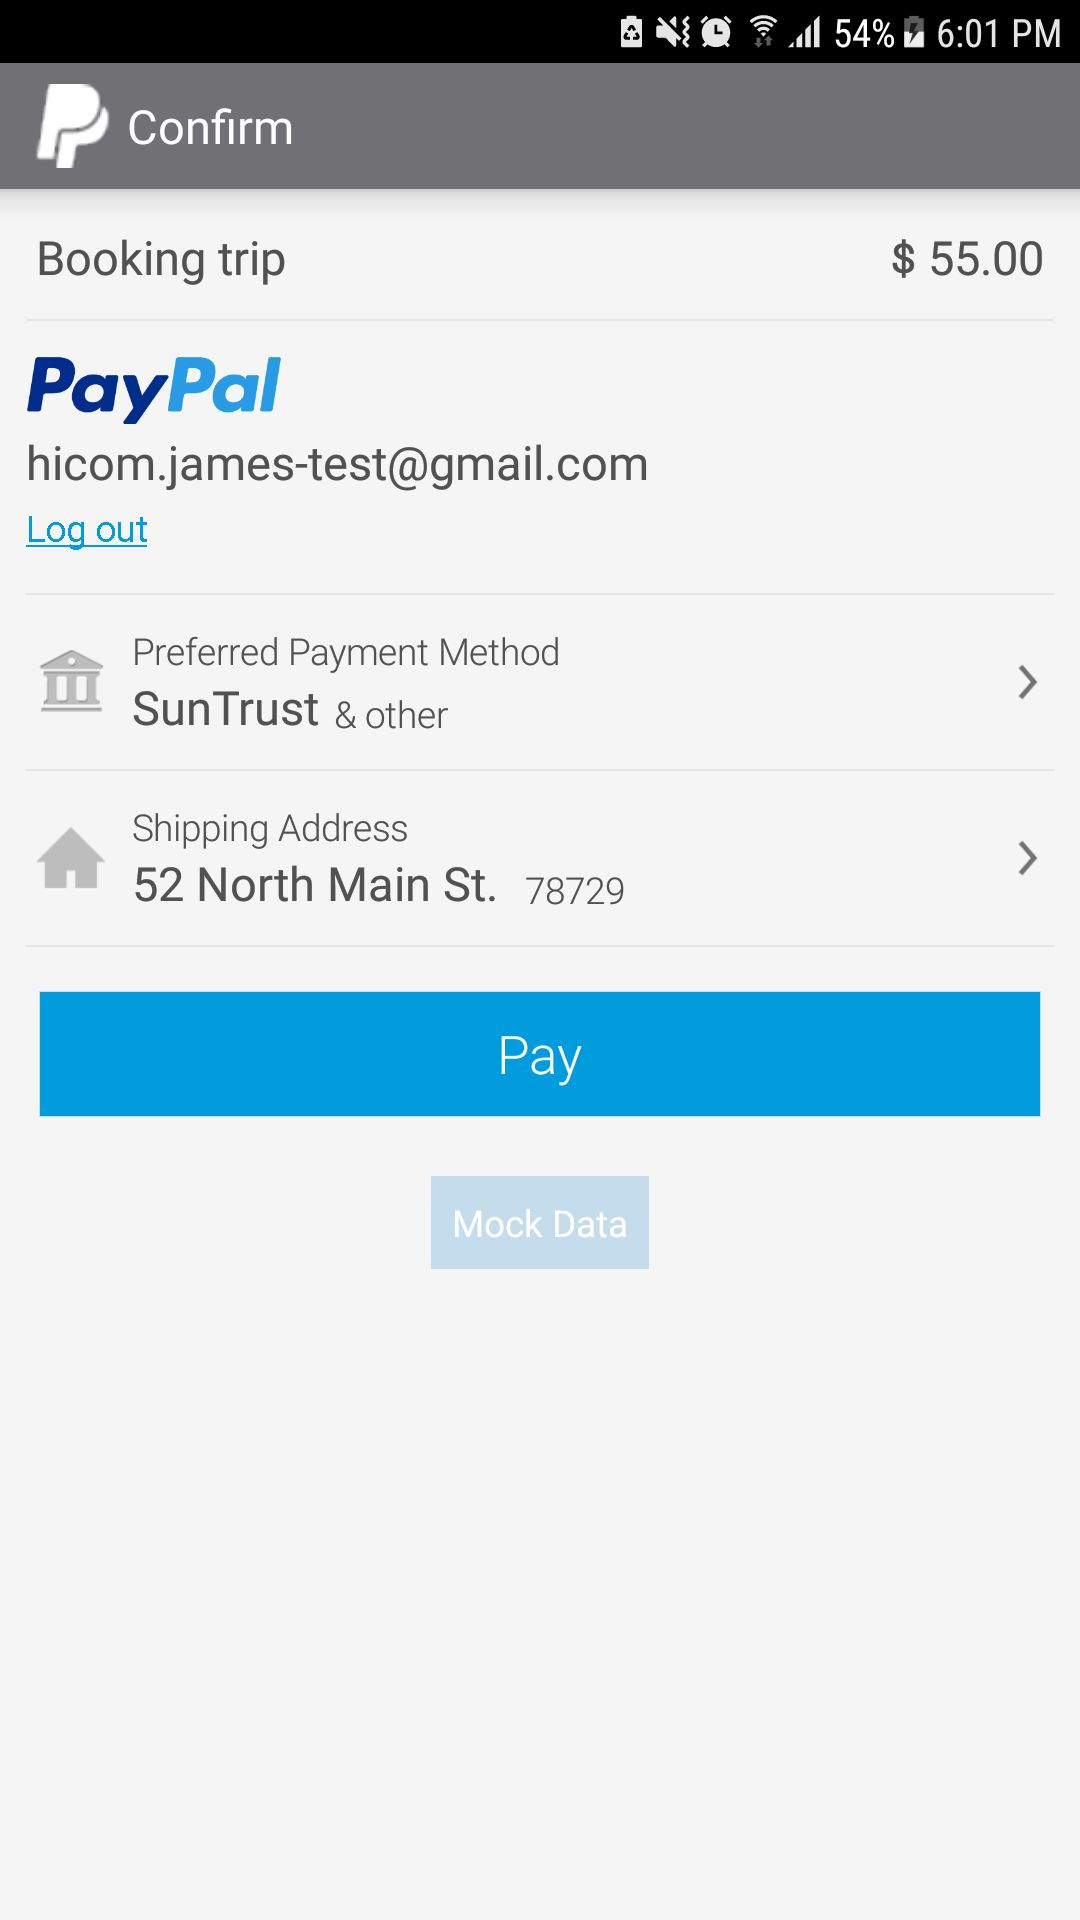 Bus Ticket Booking - Android App Source Code Screenshot 9